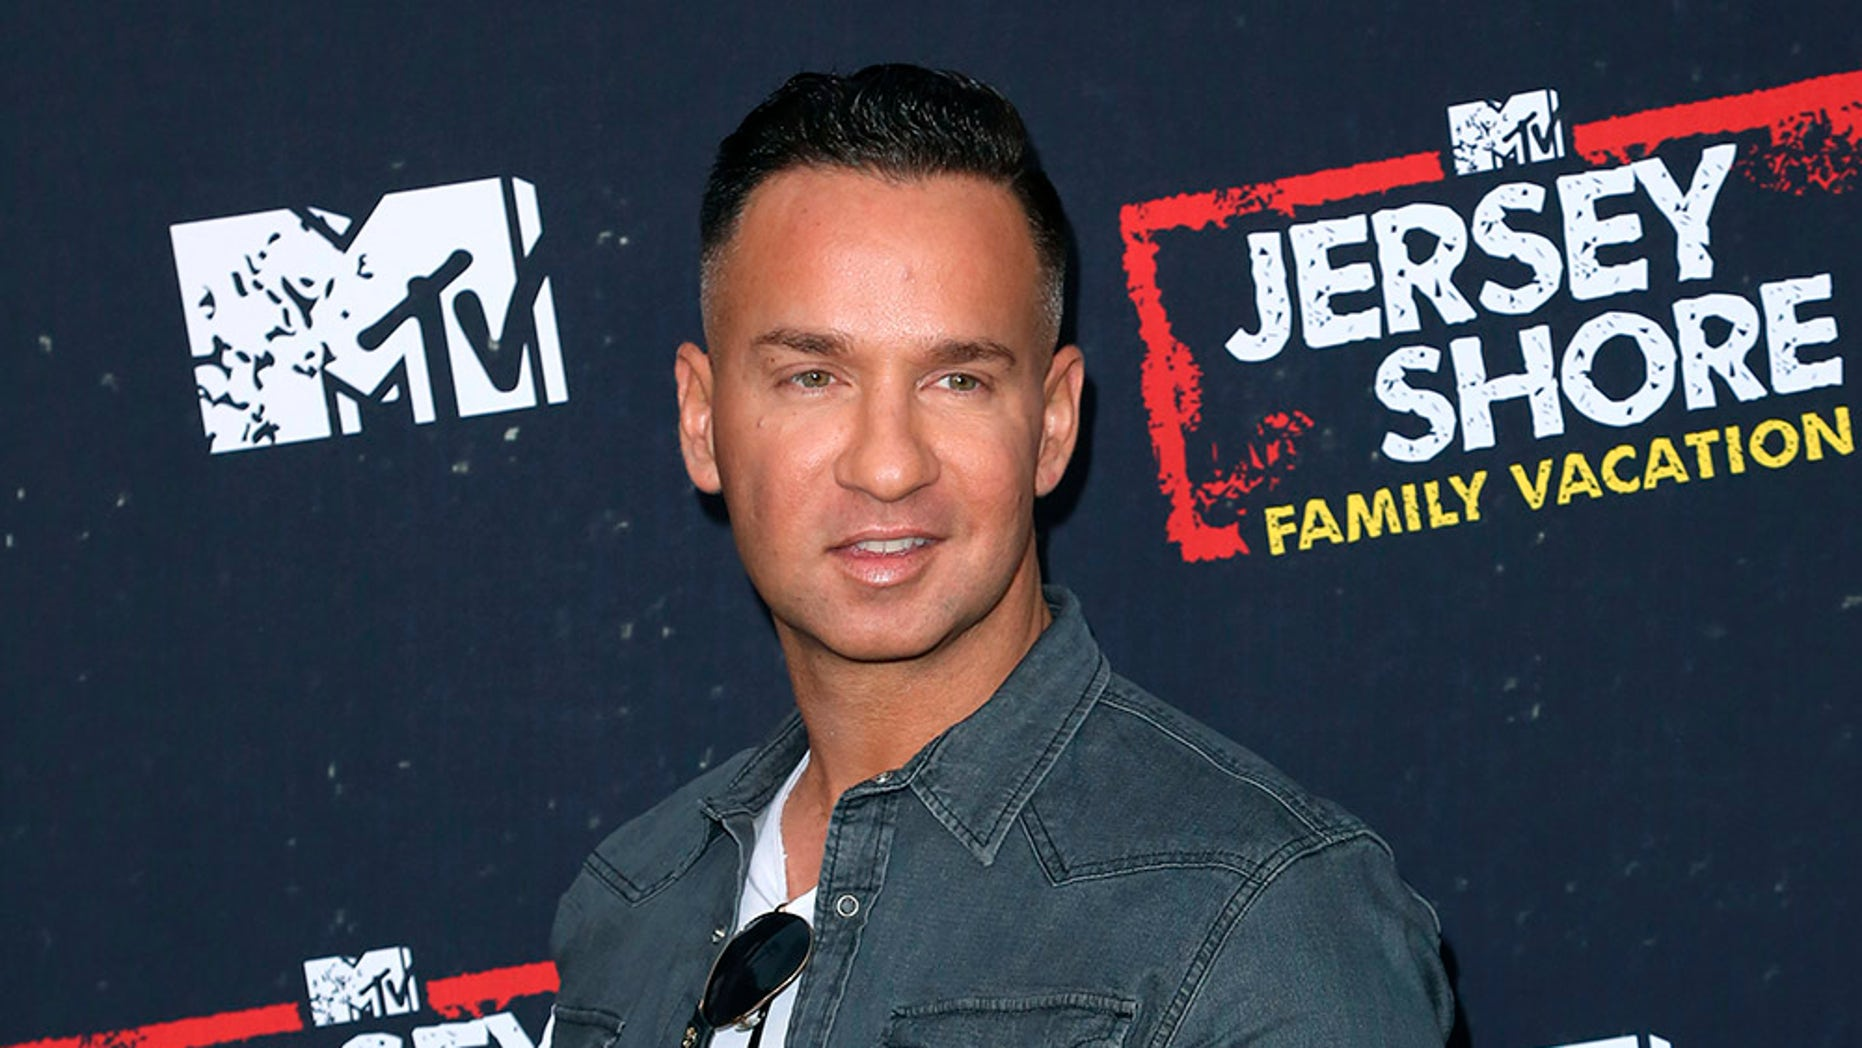 'Jersey Shore's The Situation Sentenced To Prison For Tax Evasion